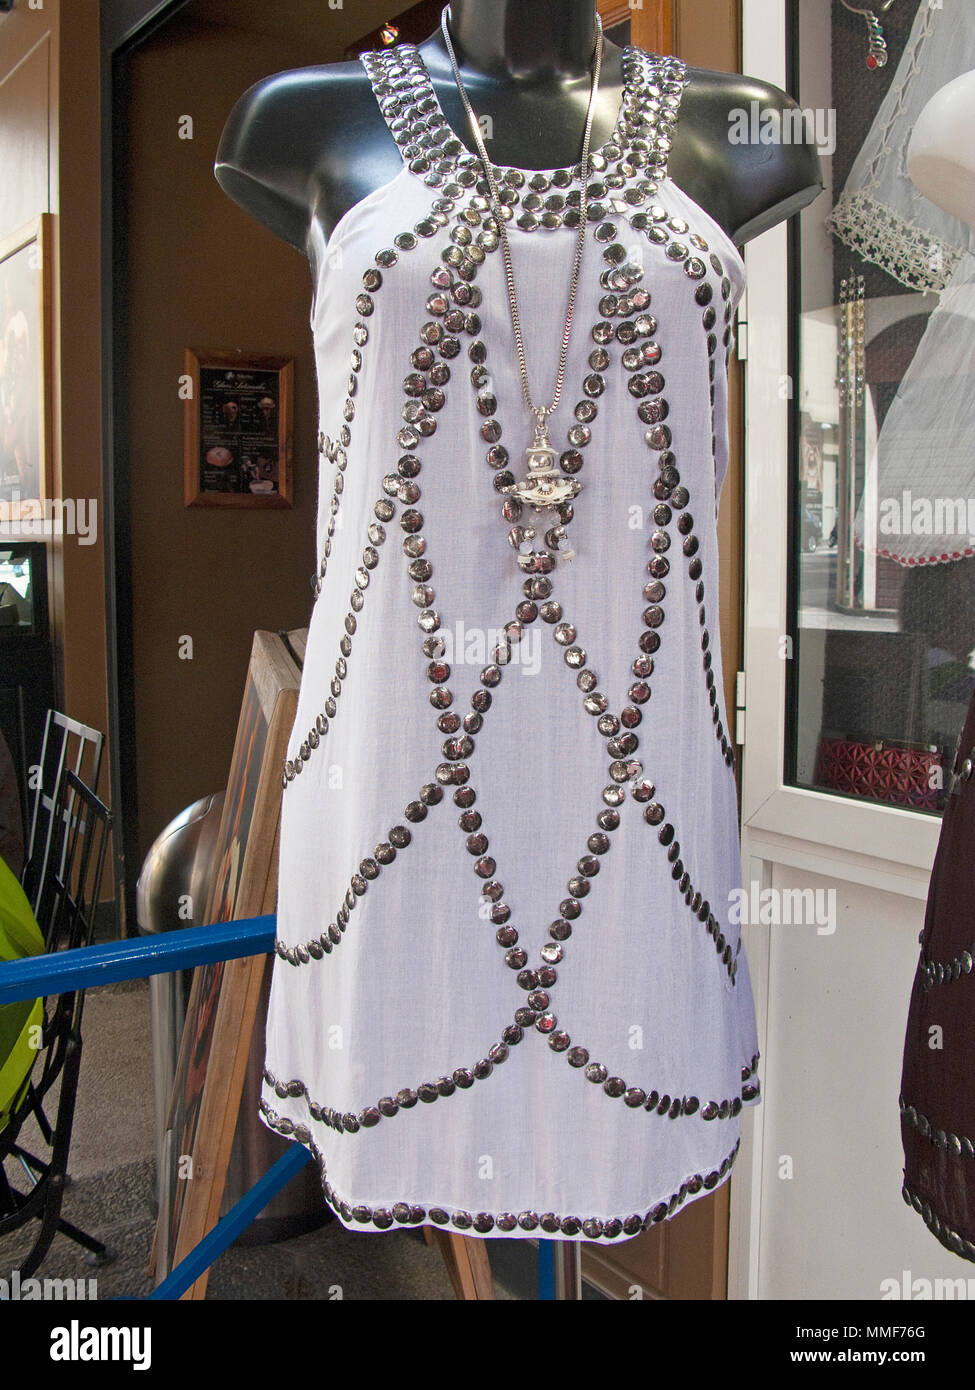 Rhinestone dress in a fashion shop in a shopping street close Place Masséna, Nice, South France, Alpes-Maritimes, Cote Azur, France, Europe - Stock Image